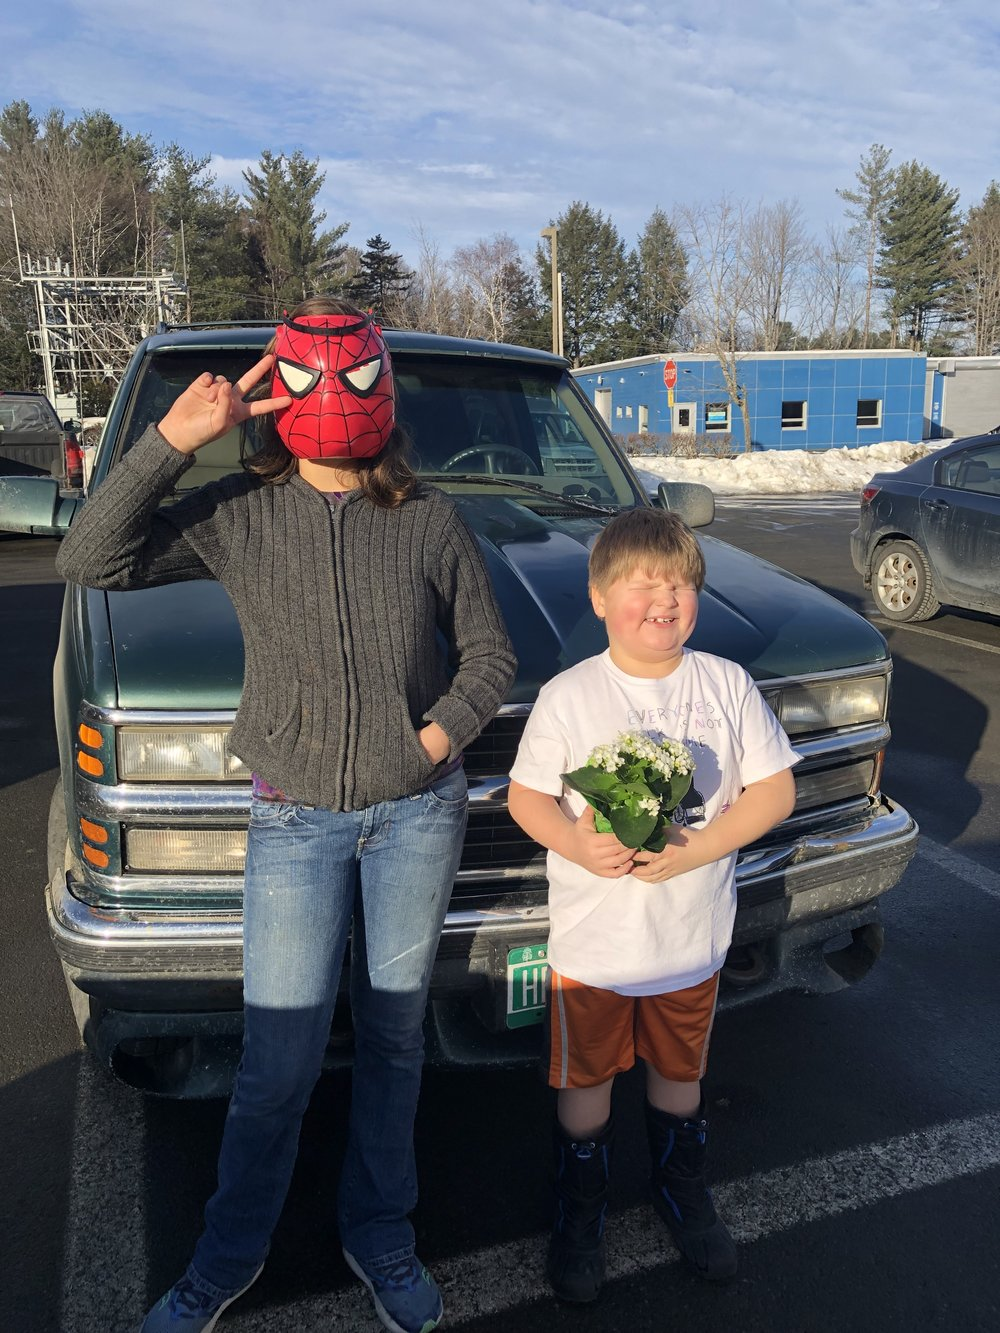 Congratulations to Zac, our Grand Prize Winner! - Zac Prestridge (age 7, right hip Perthes, lives in Vermont), found all 20 items in the fastest time, 1 hour and 22 mins! Way to go, Zac! He wins our special Spider-Verse roller backpack, 4 free movie tickets + other cool merchandise from PKF & Sony Pictures!